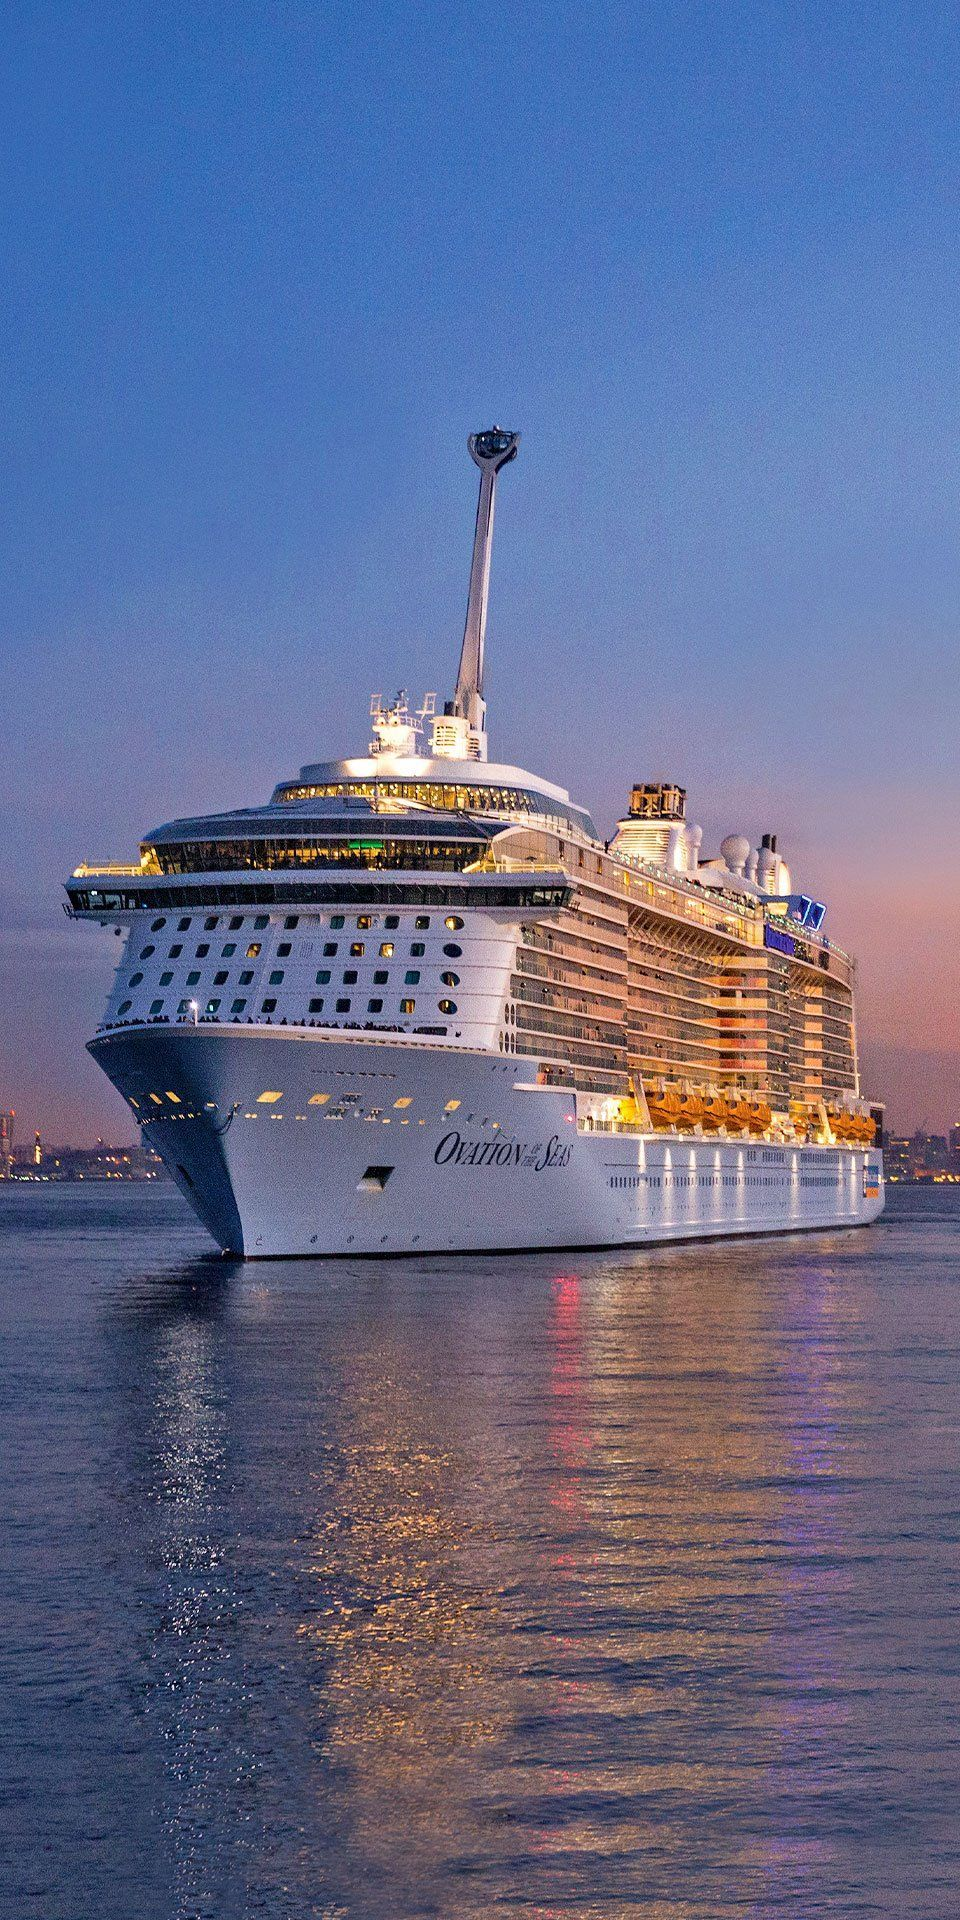 Ovation Of The Seas This Quantum Class Ship Is Equipped To Offer You The Best Time On Your Way To Alaska Pacific Cruise Royal Caribbean Cruise Cruise Travel